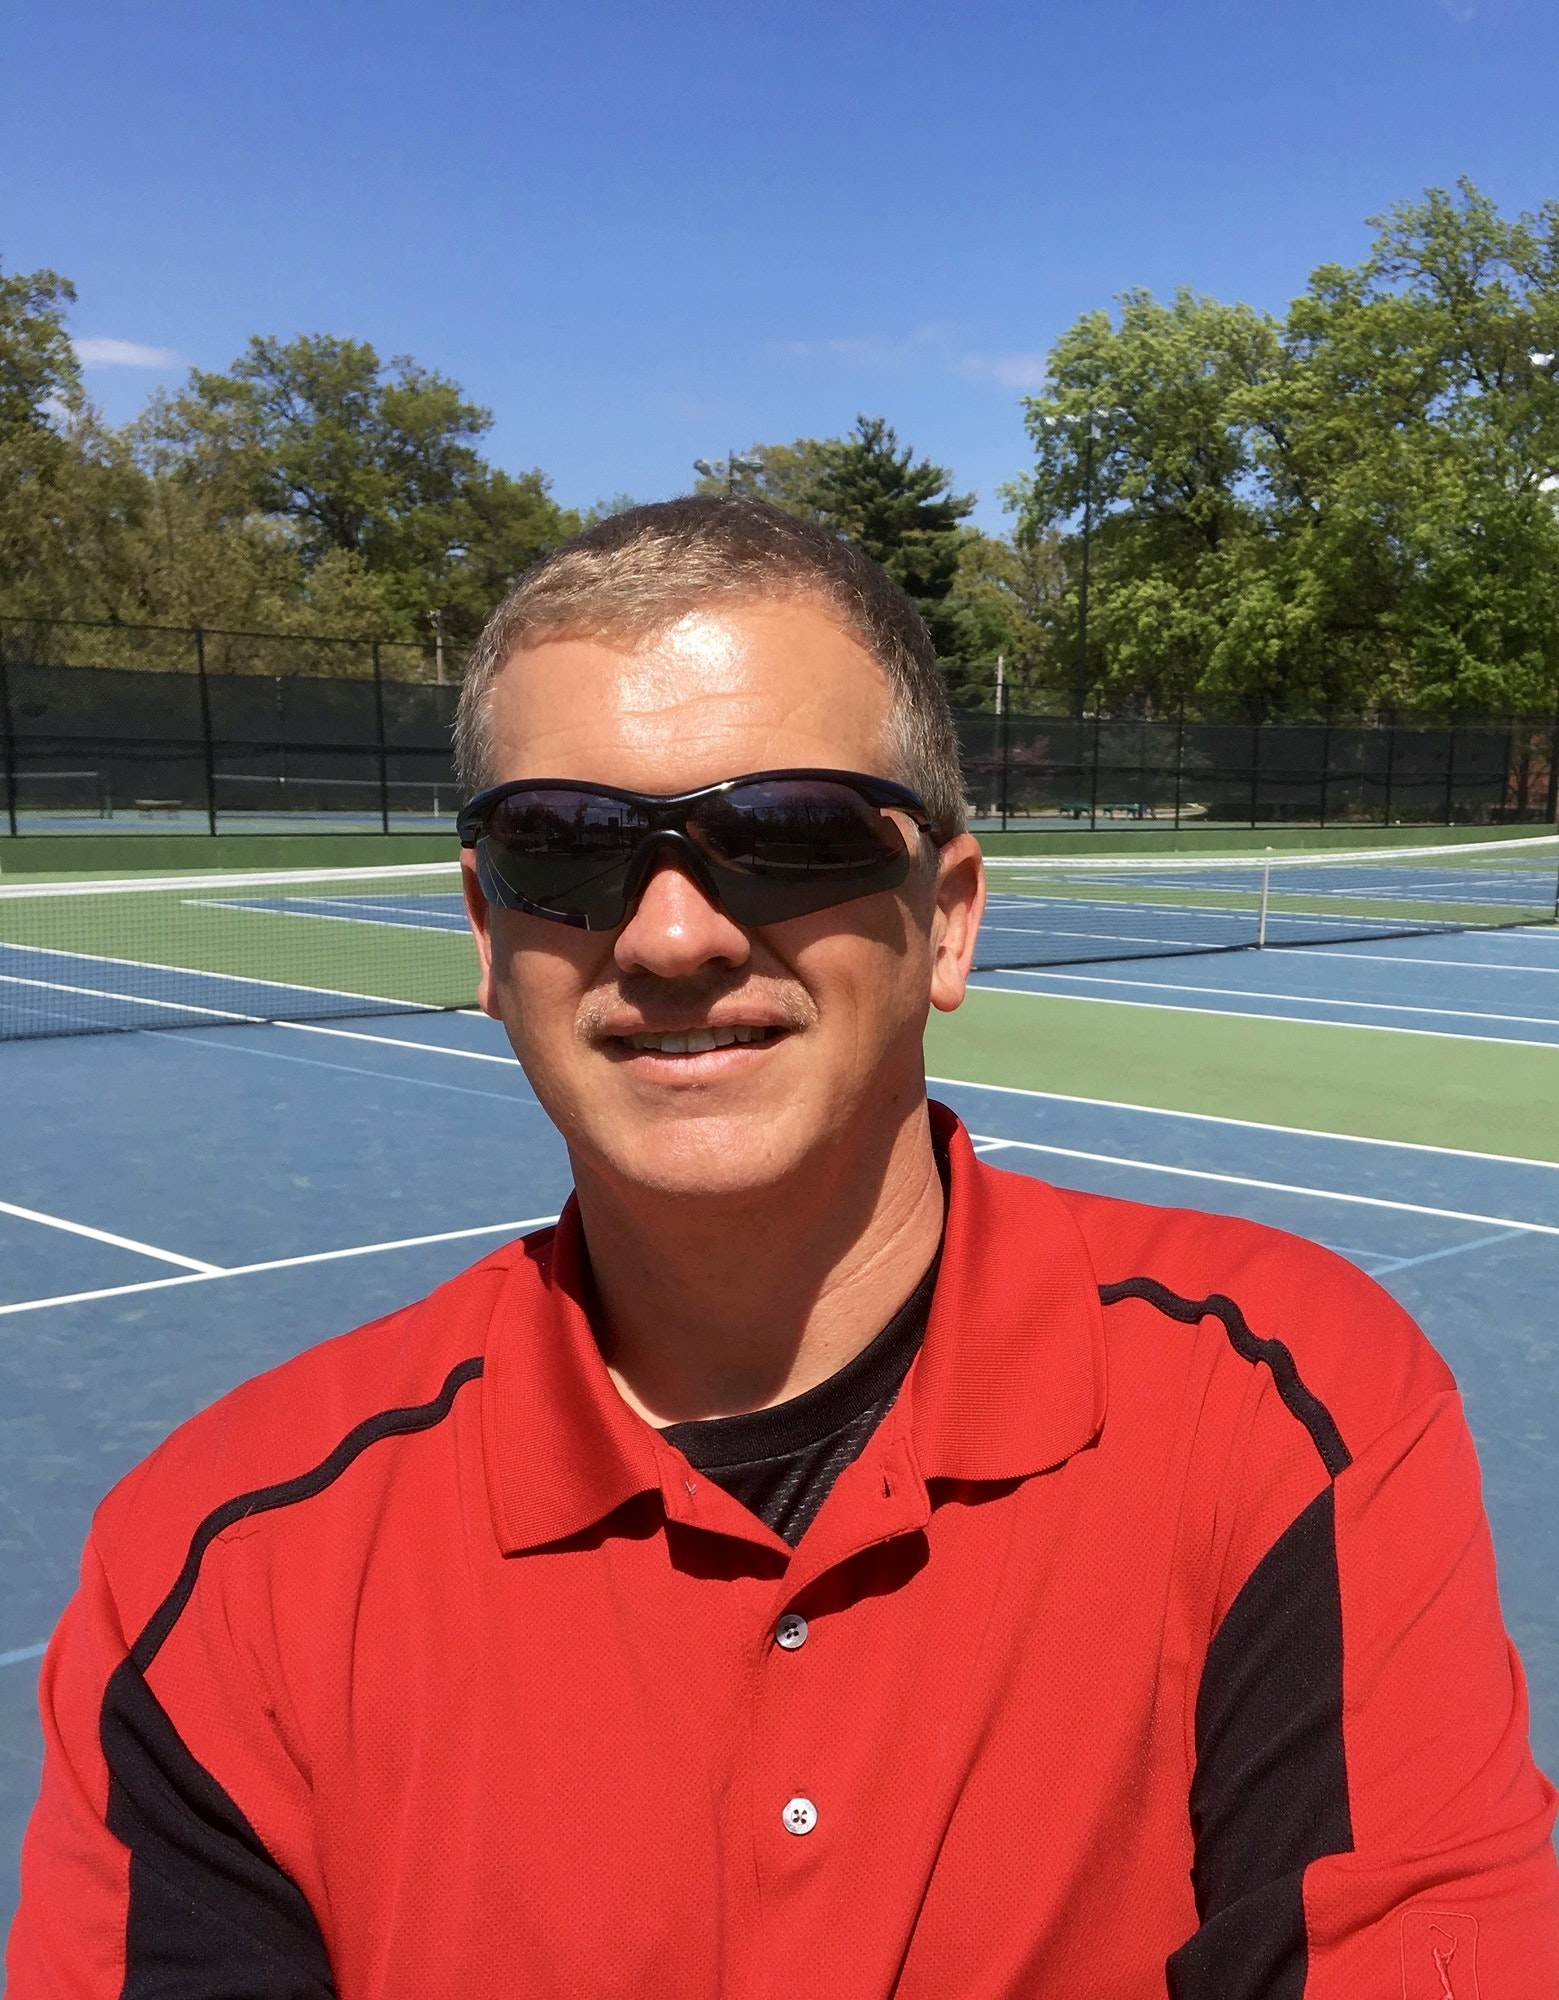 Brian K. teaches tennis lessons in Ballwin, MO